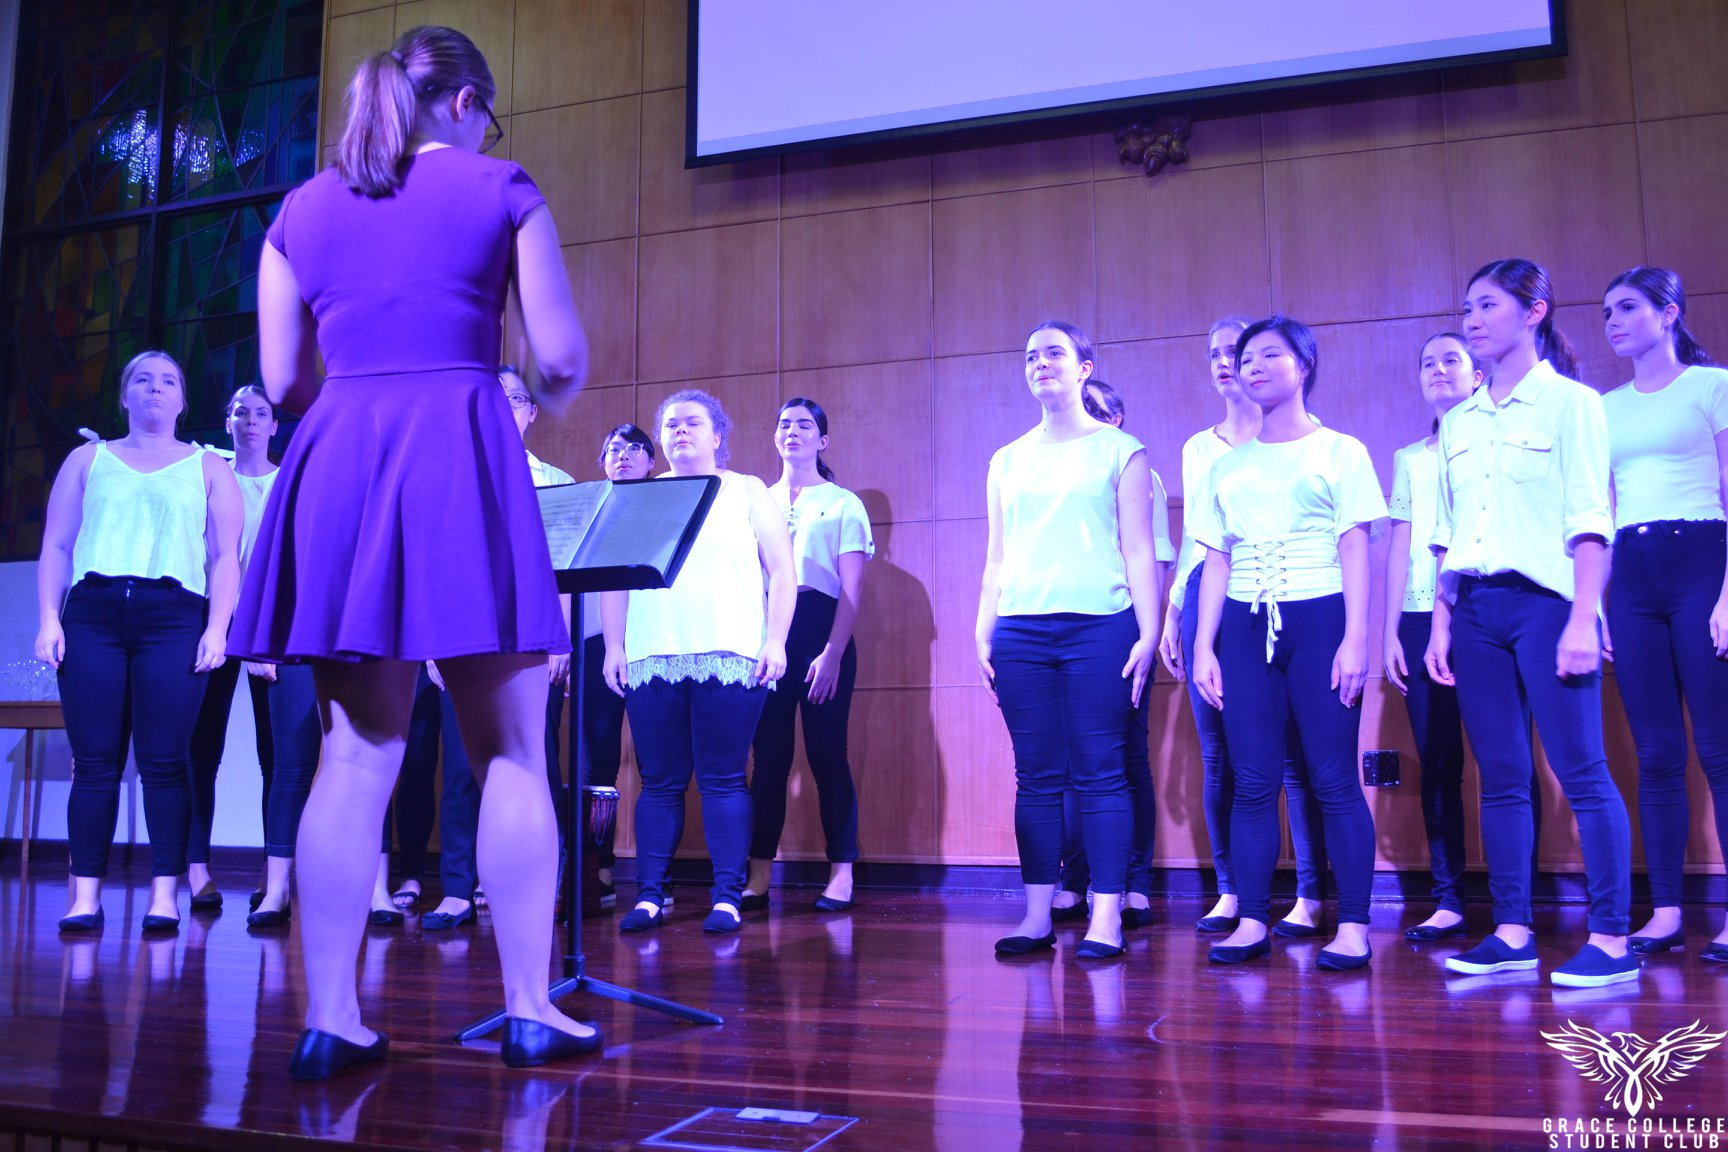 The Grace College choir performs